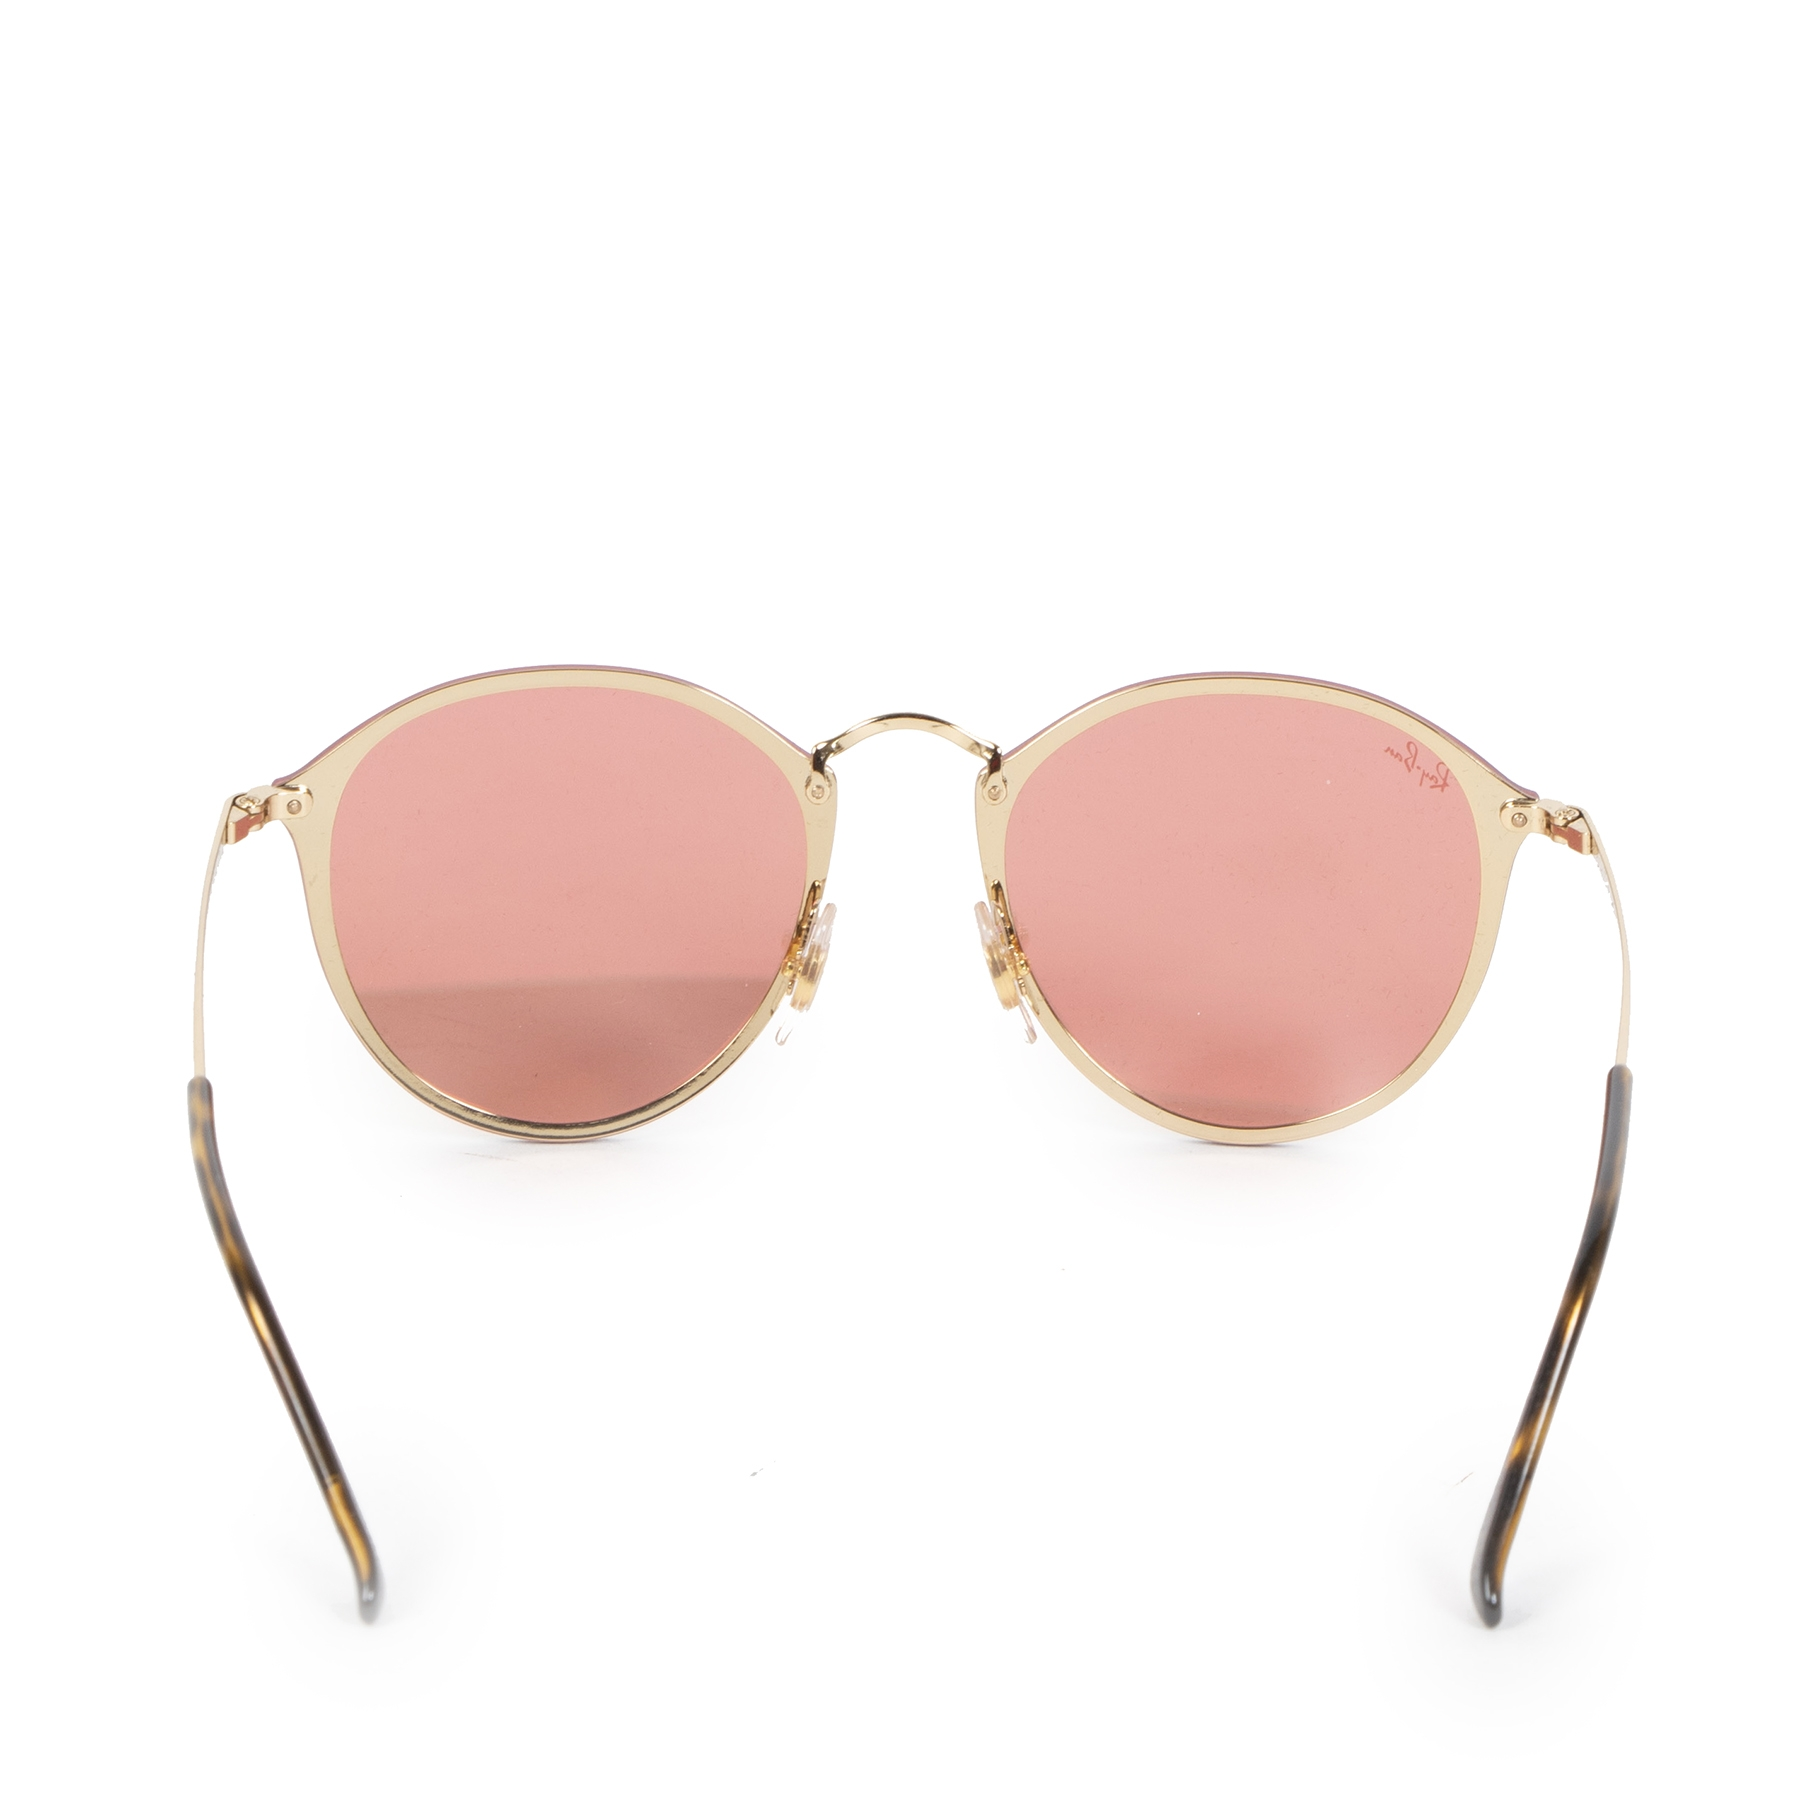 Authentic second-hand vintage Rayban Pink Blaze Round Sunglasses buy online webshop LabelLOV